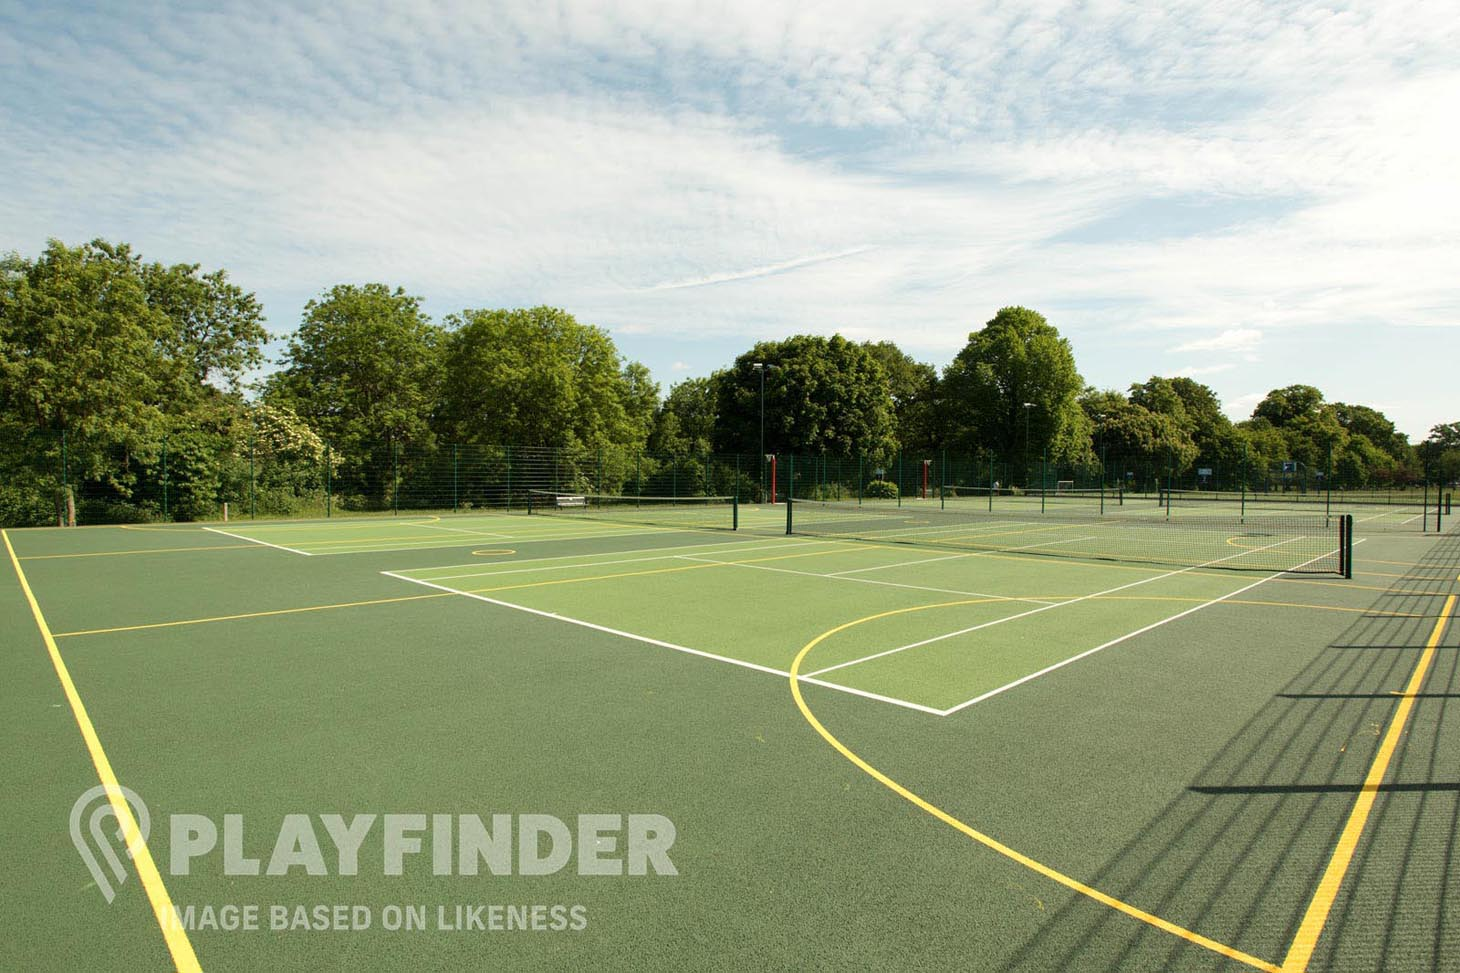 Whalley Range Cricket & Lawn Tennis Club Outdoor | Hard (macadam) tennis court